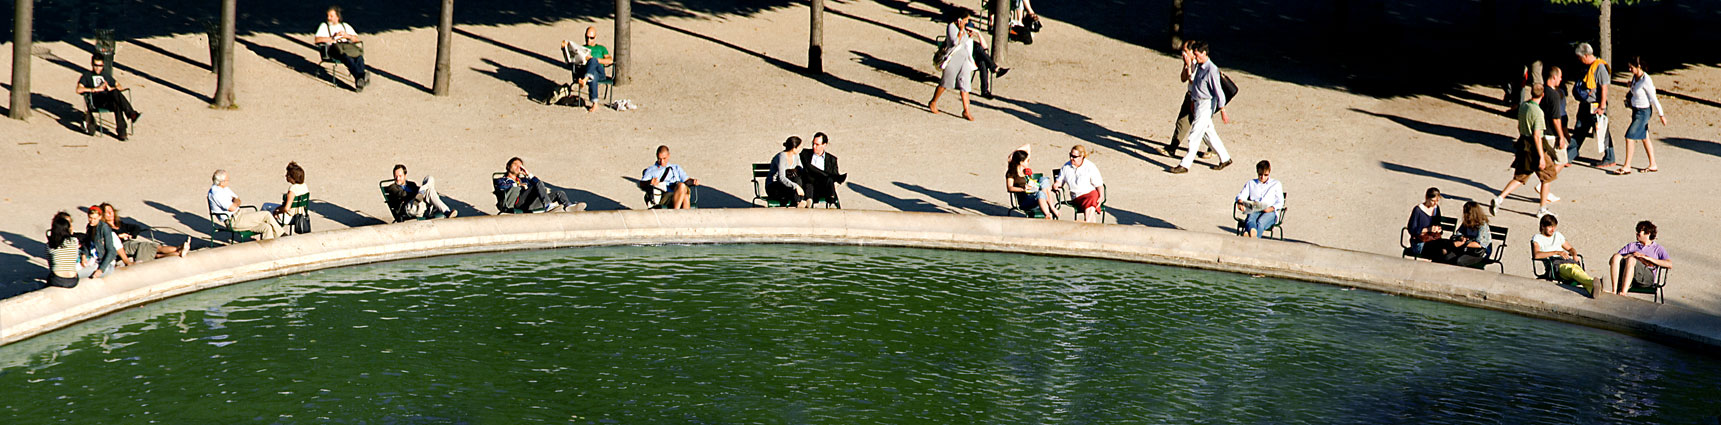 Palais Royal Pond, Paris, 2007